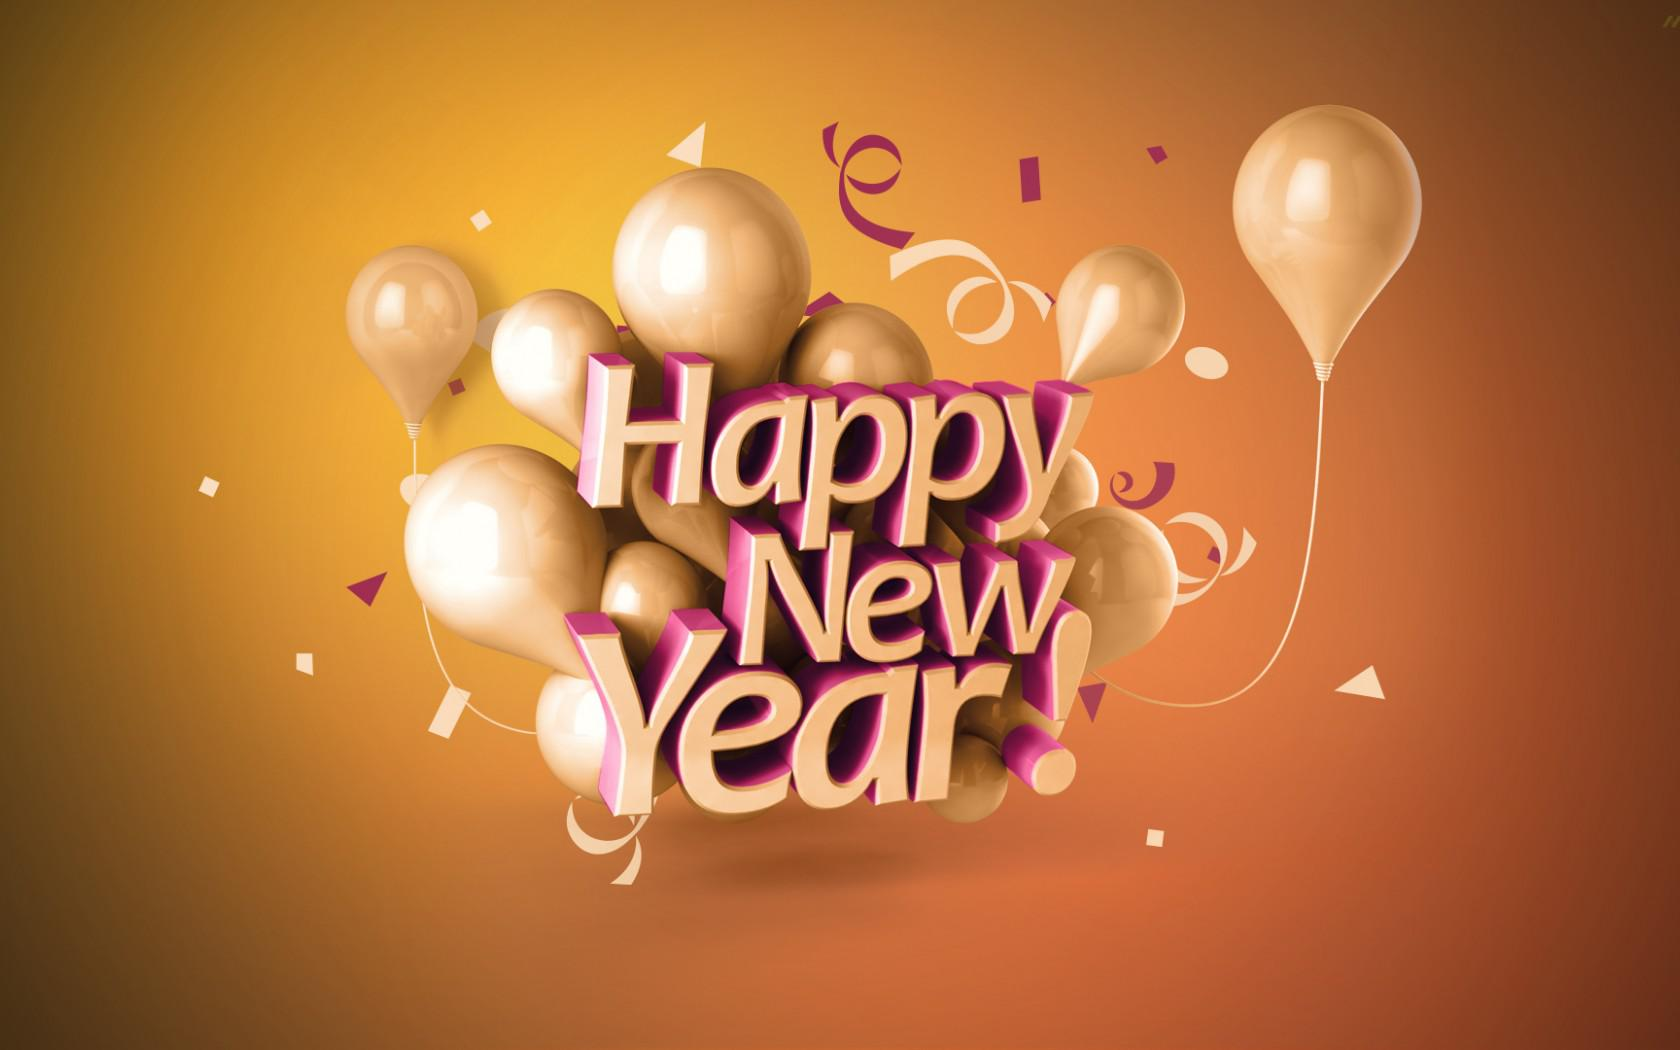 30 Best Happy New Year 2019 Wallpapersgreeting Picturesquotes